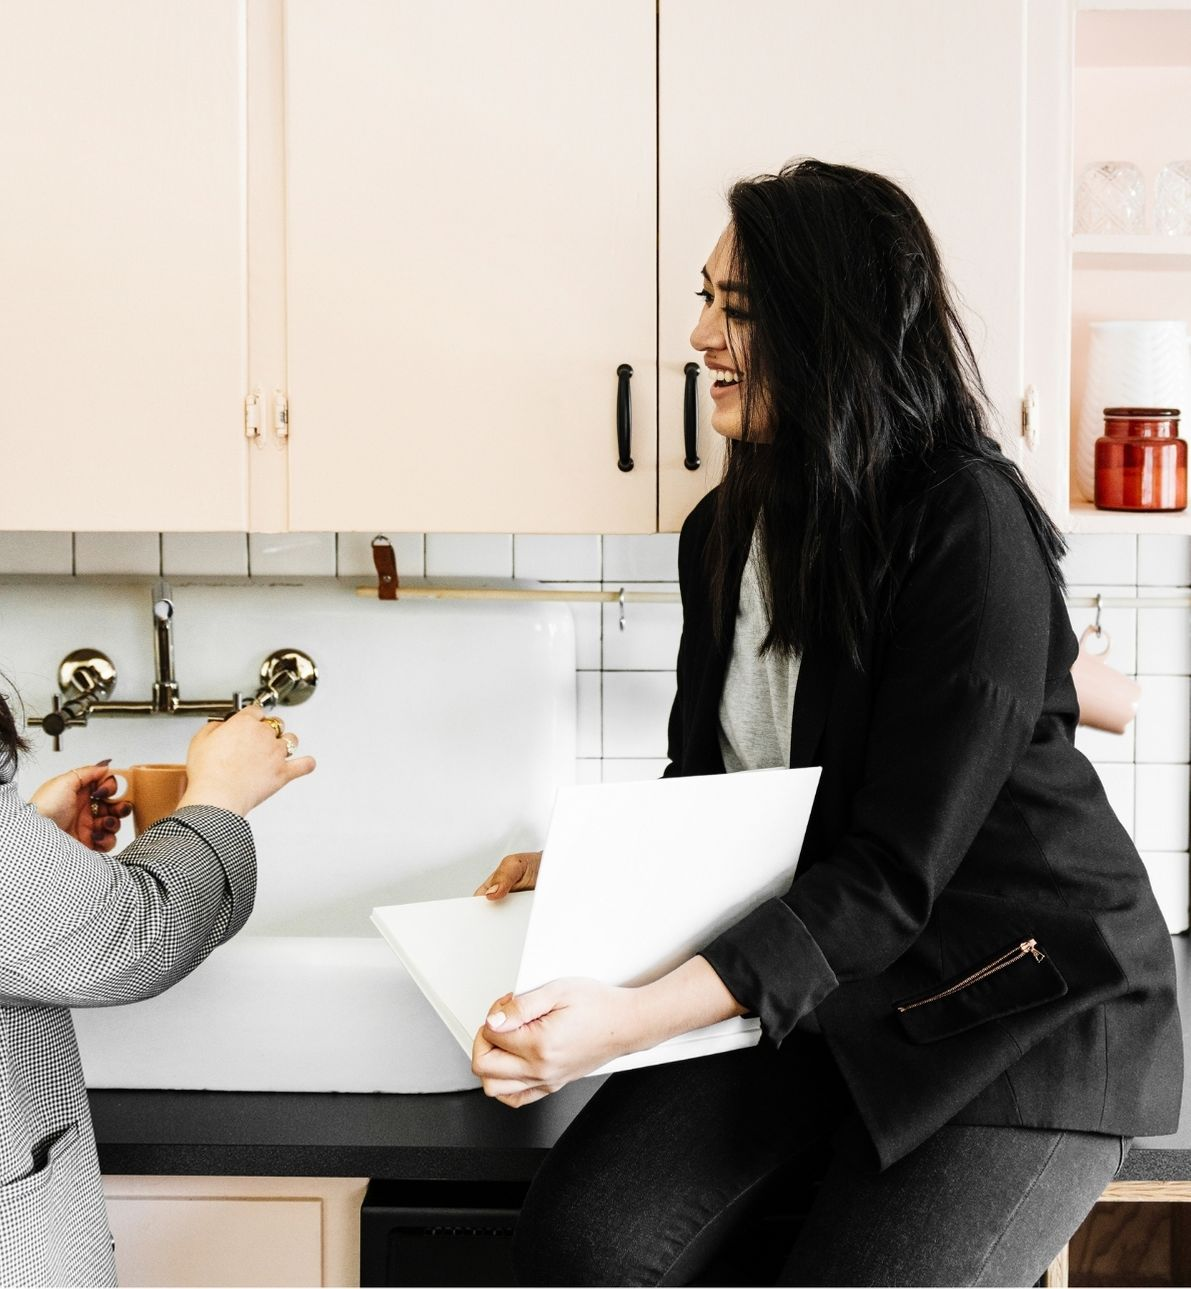 a woman leaning against a counter chatting with another woman fixing a coffee